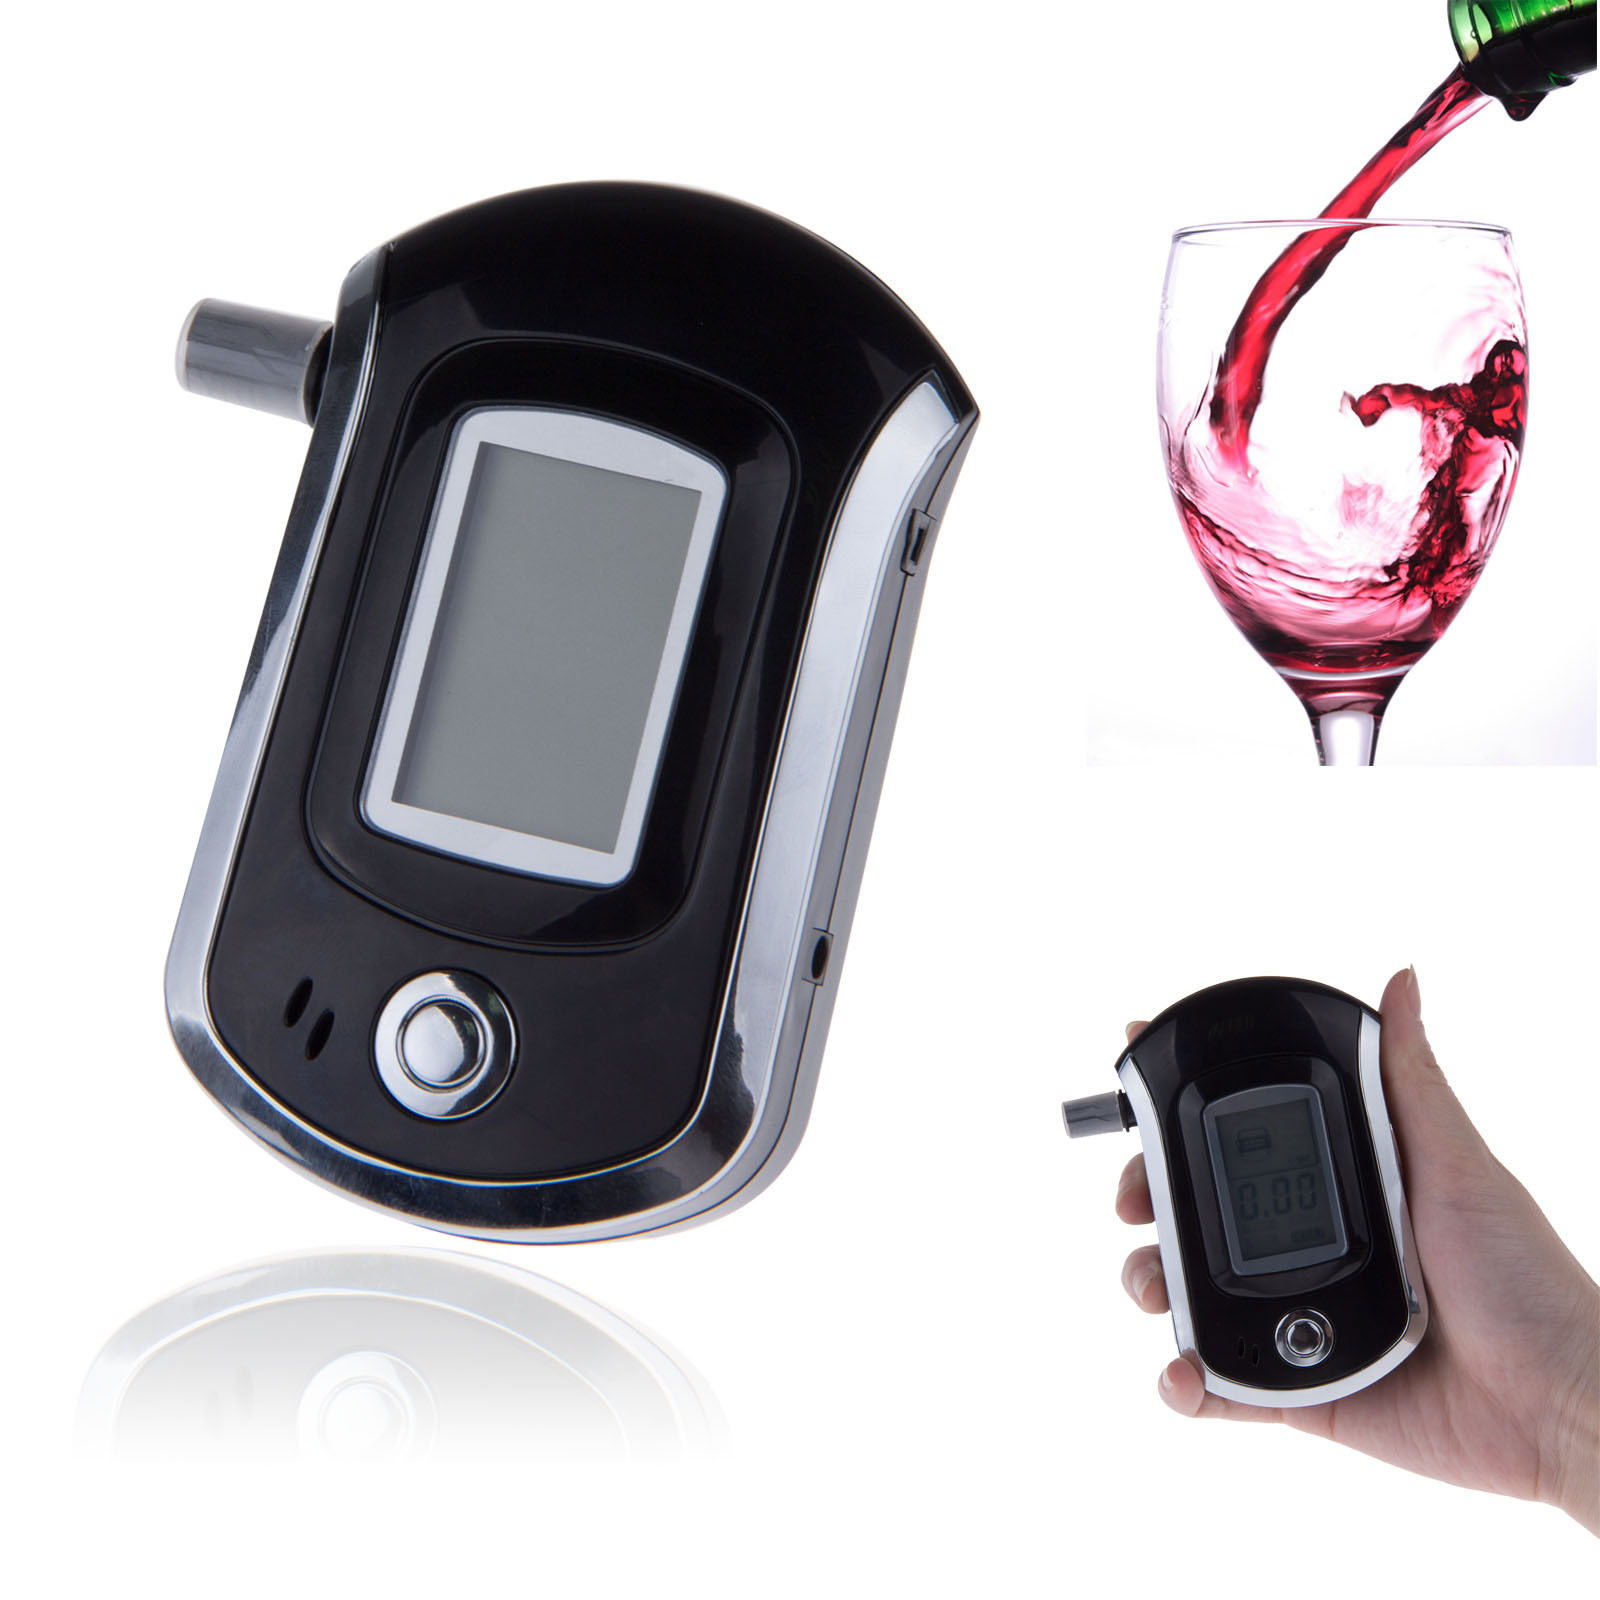 BS-6000 Portable Police Grade Digital Alcohol Analyzer Tester LCD Breathalyzer Free shippingFree Shipping(China (Mainland))